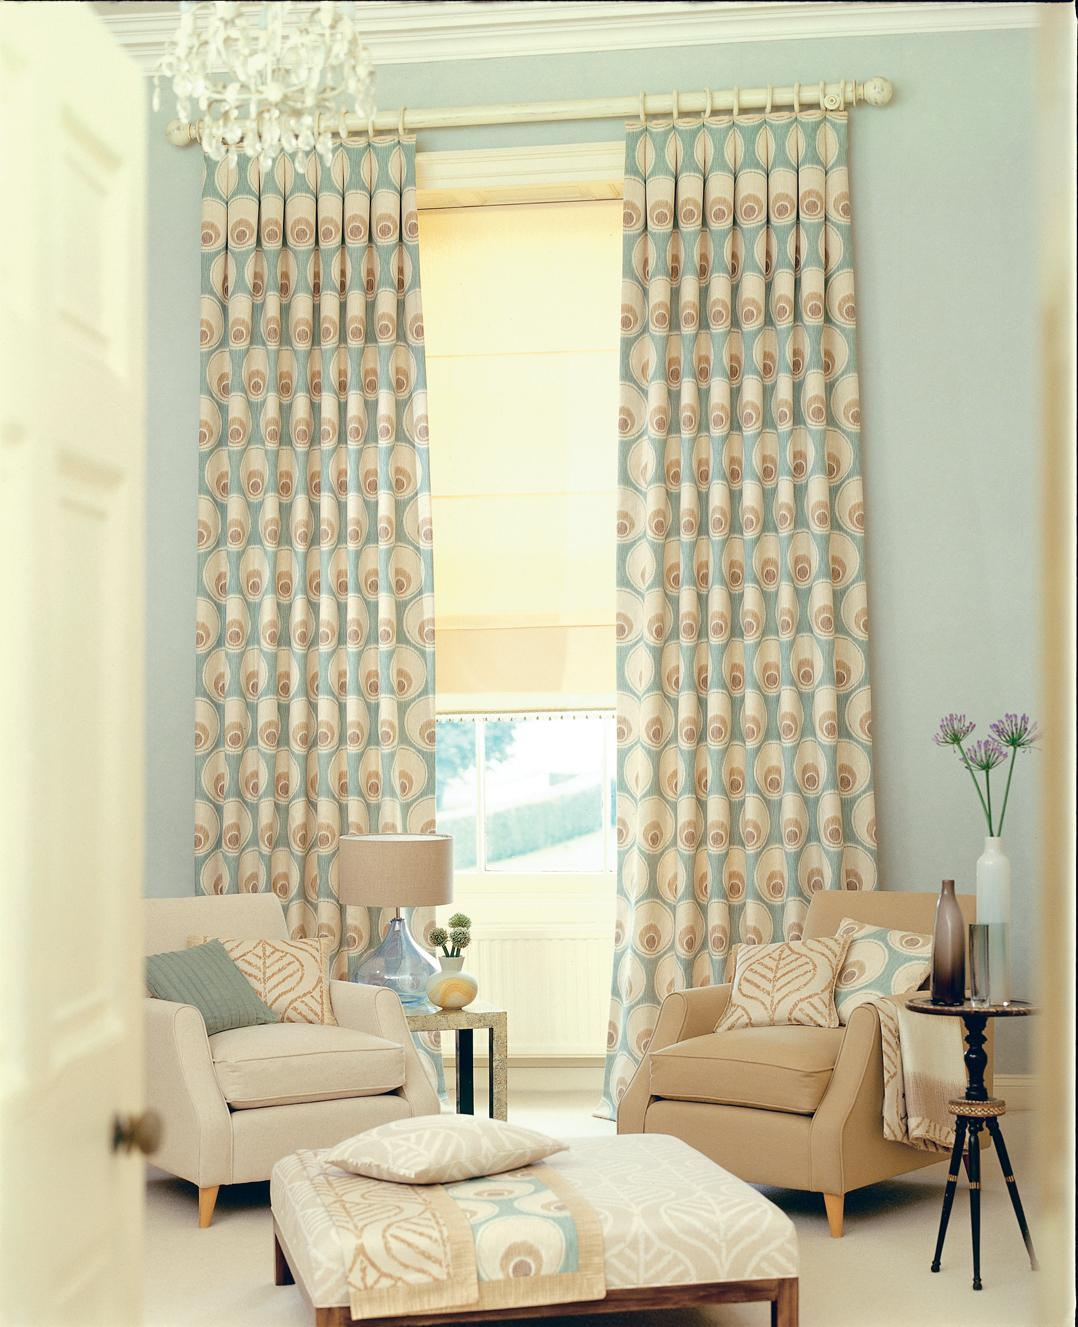 Valance curtains for kitchen Photo - 8